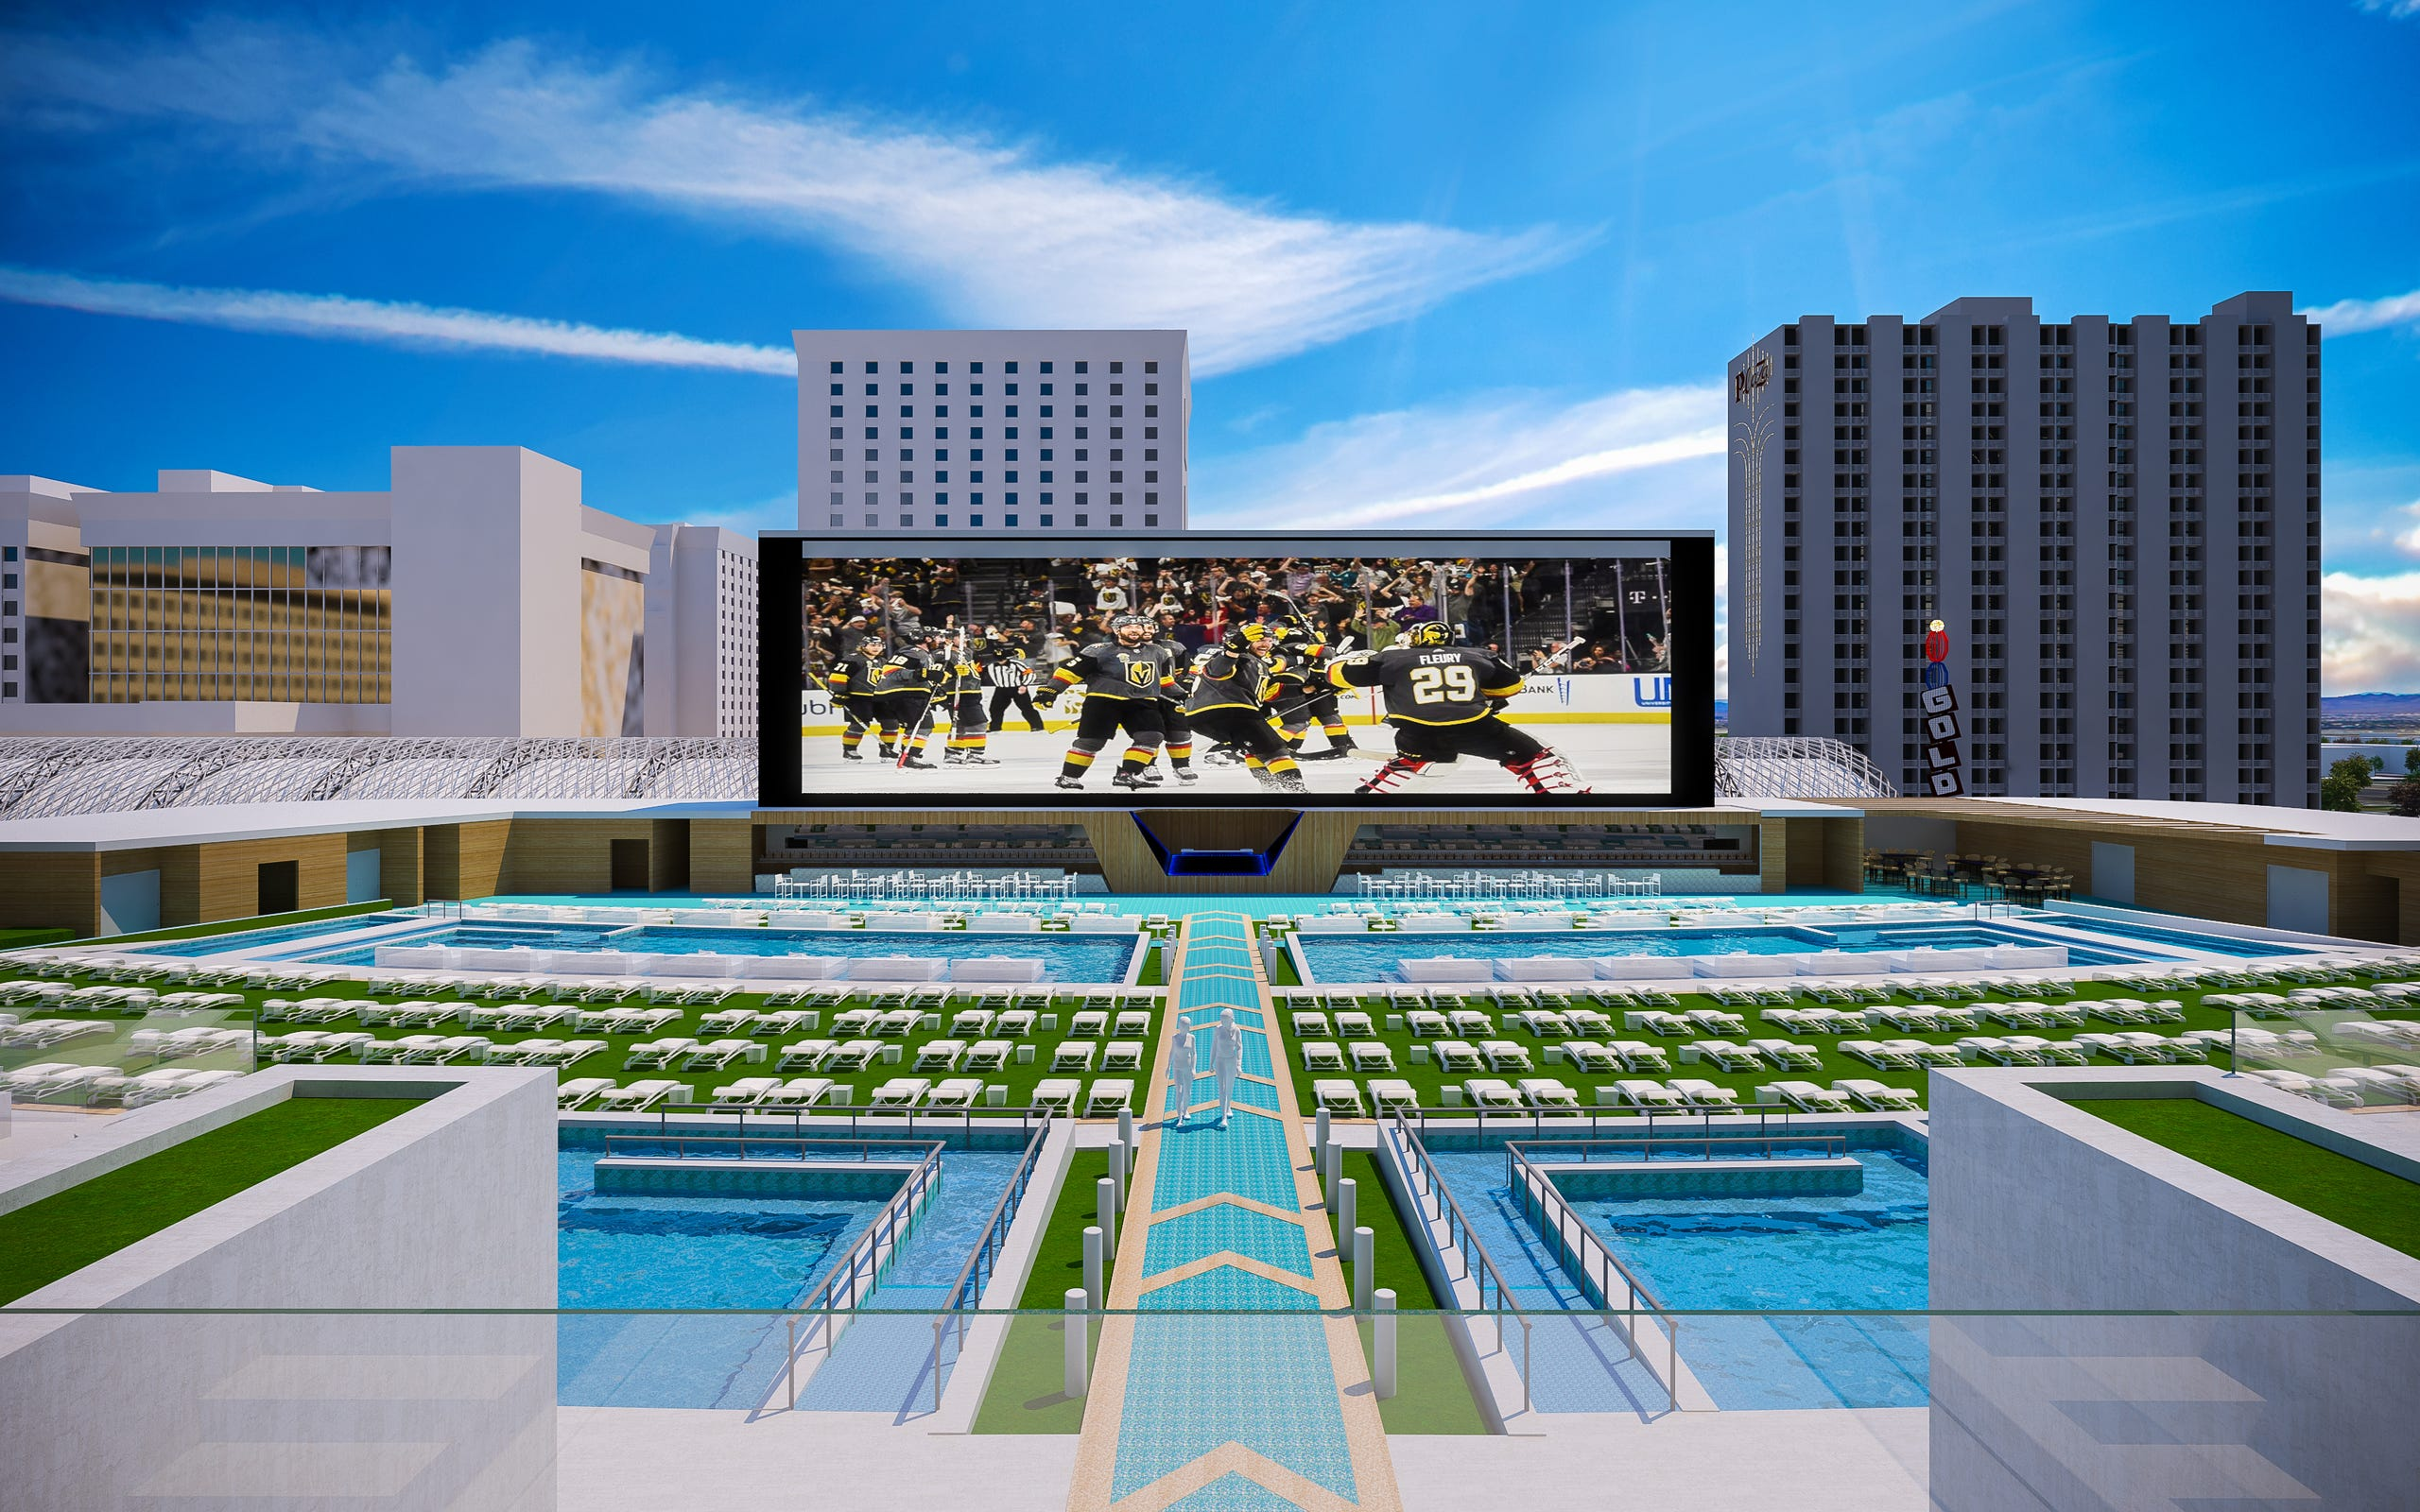 Circa will feature a multi-tiered pool amphitheater with several pools and a massive screen to generate a watch-party atmosphere for sports fans.